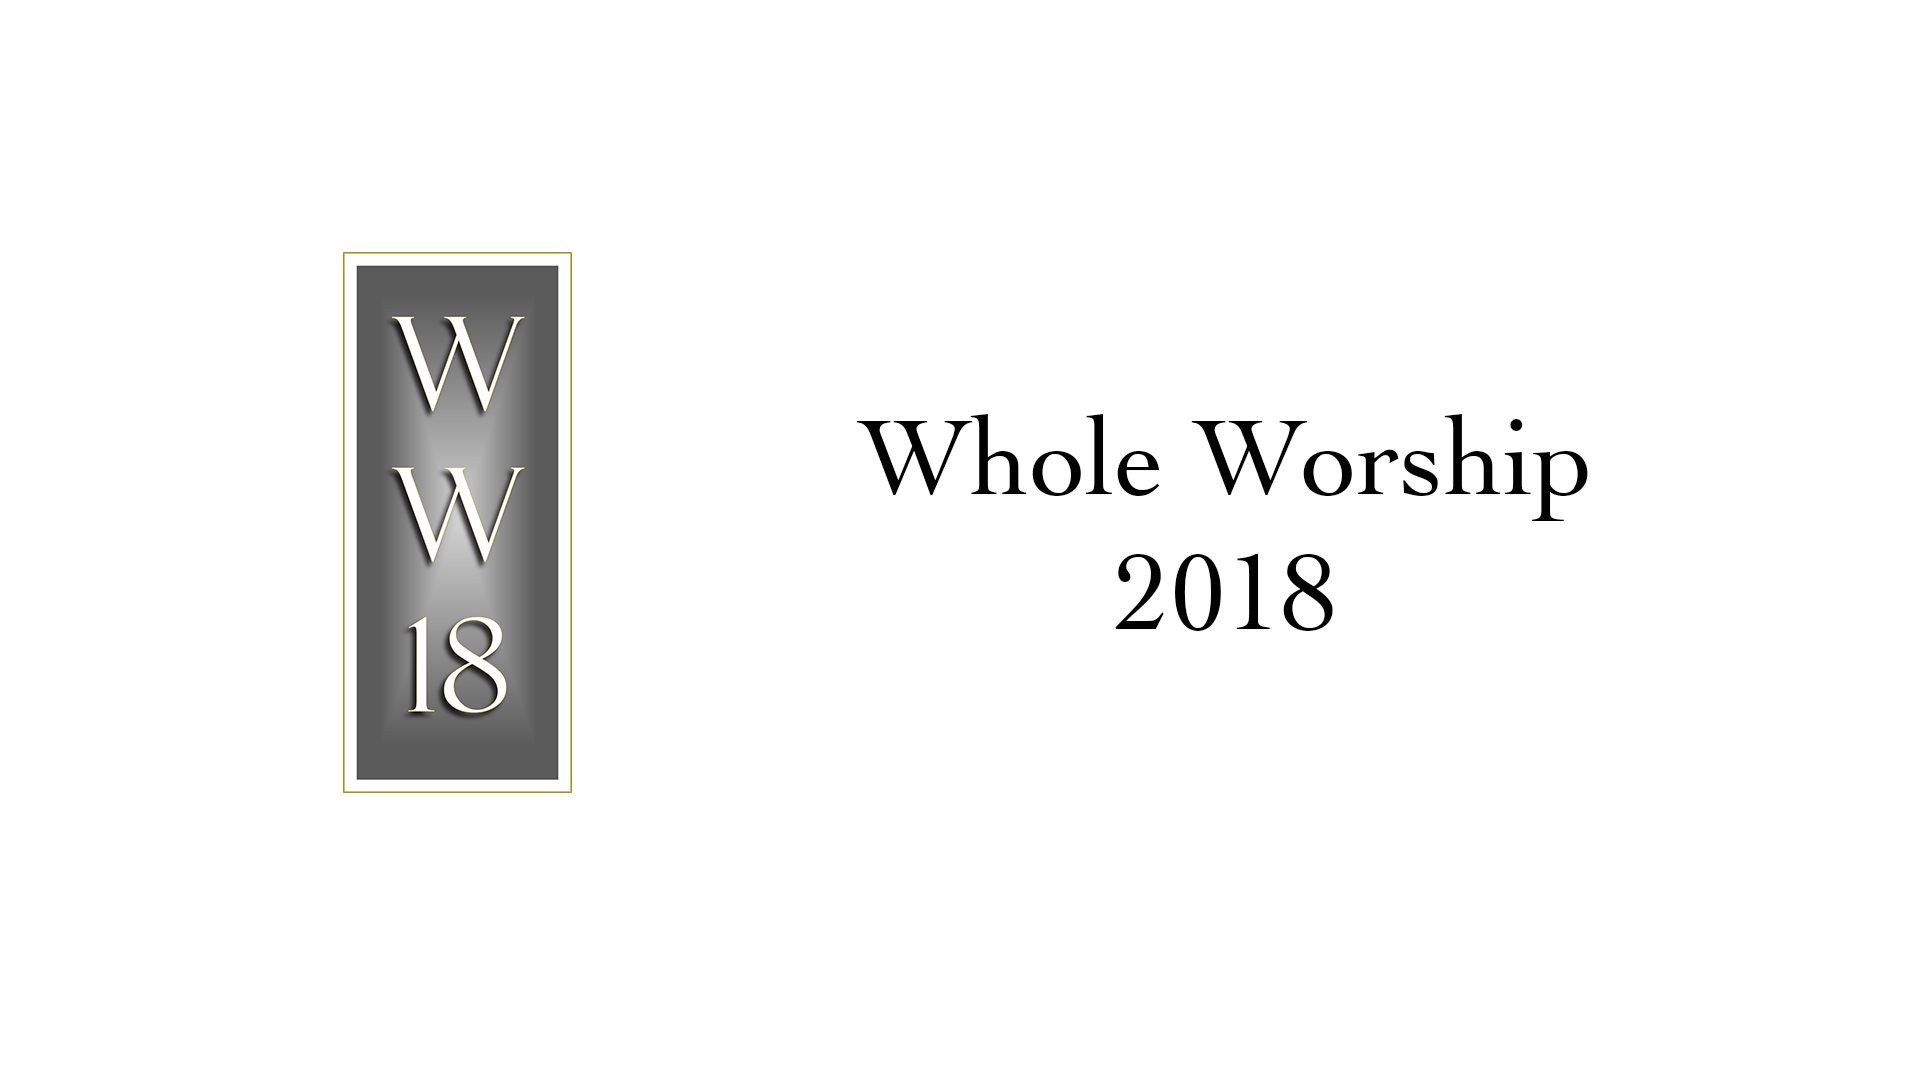 Whole Worship 2018 Slide